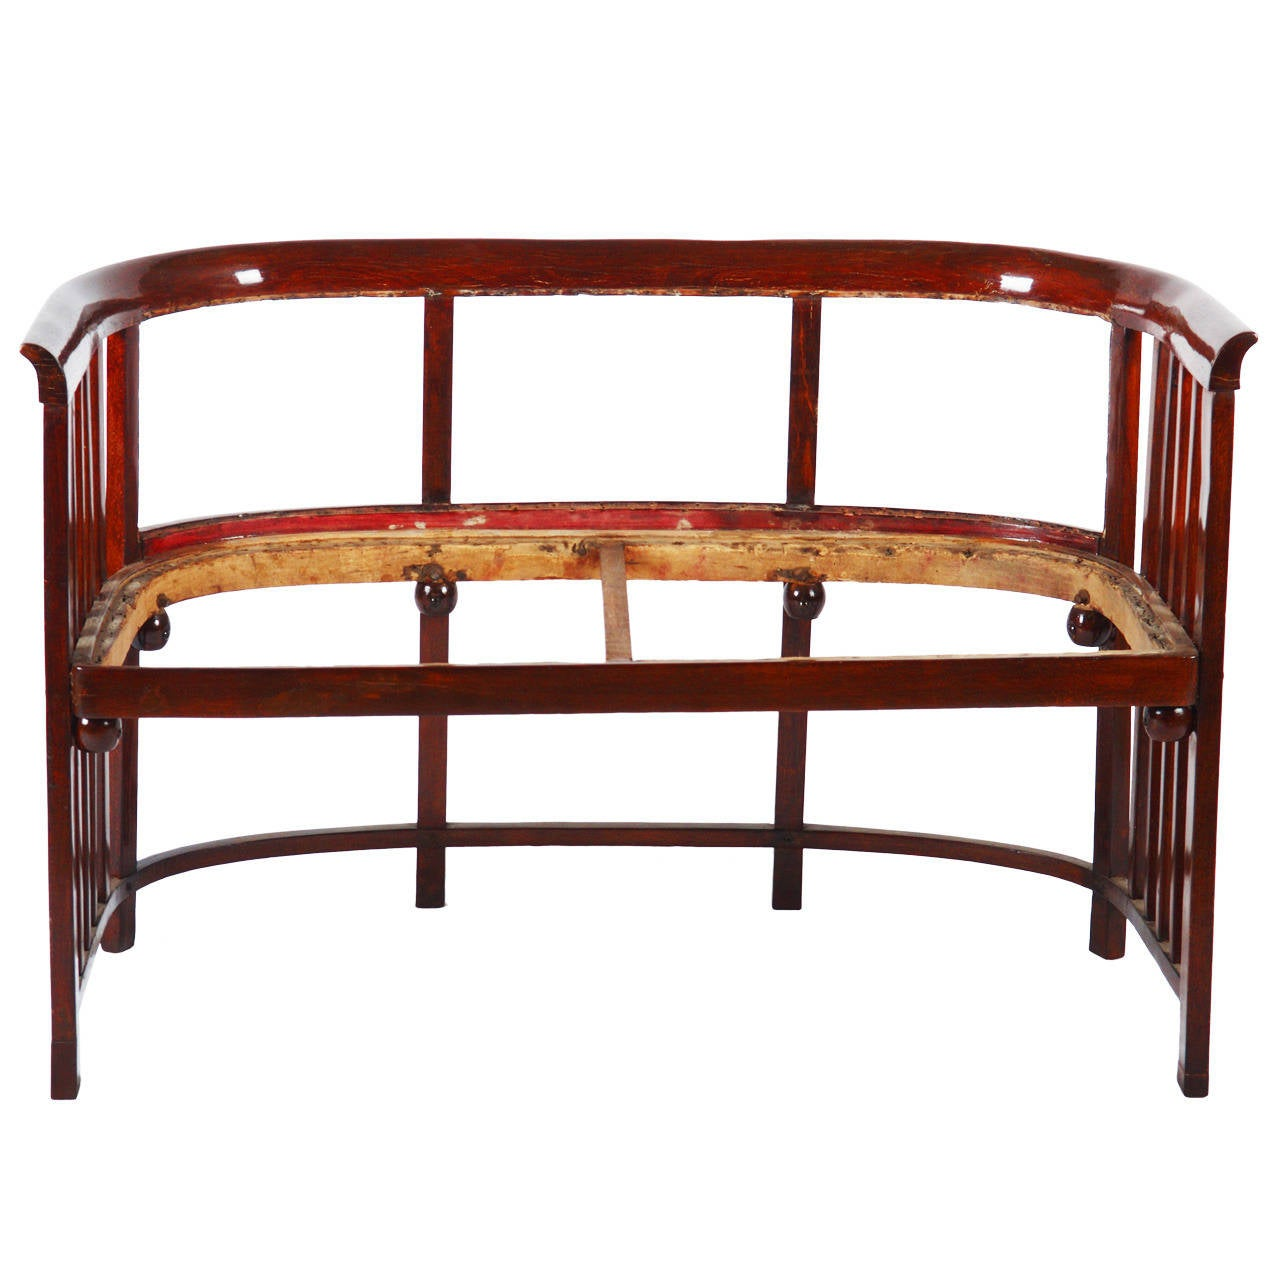 Bentwood Beach Attributed To Josef Hoffmann At 1stdibs